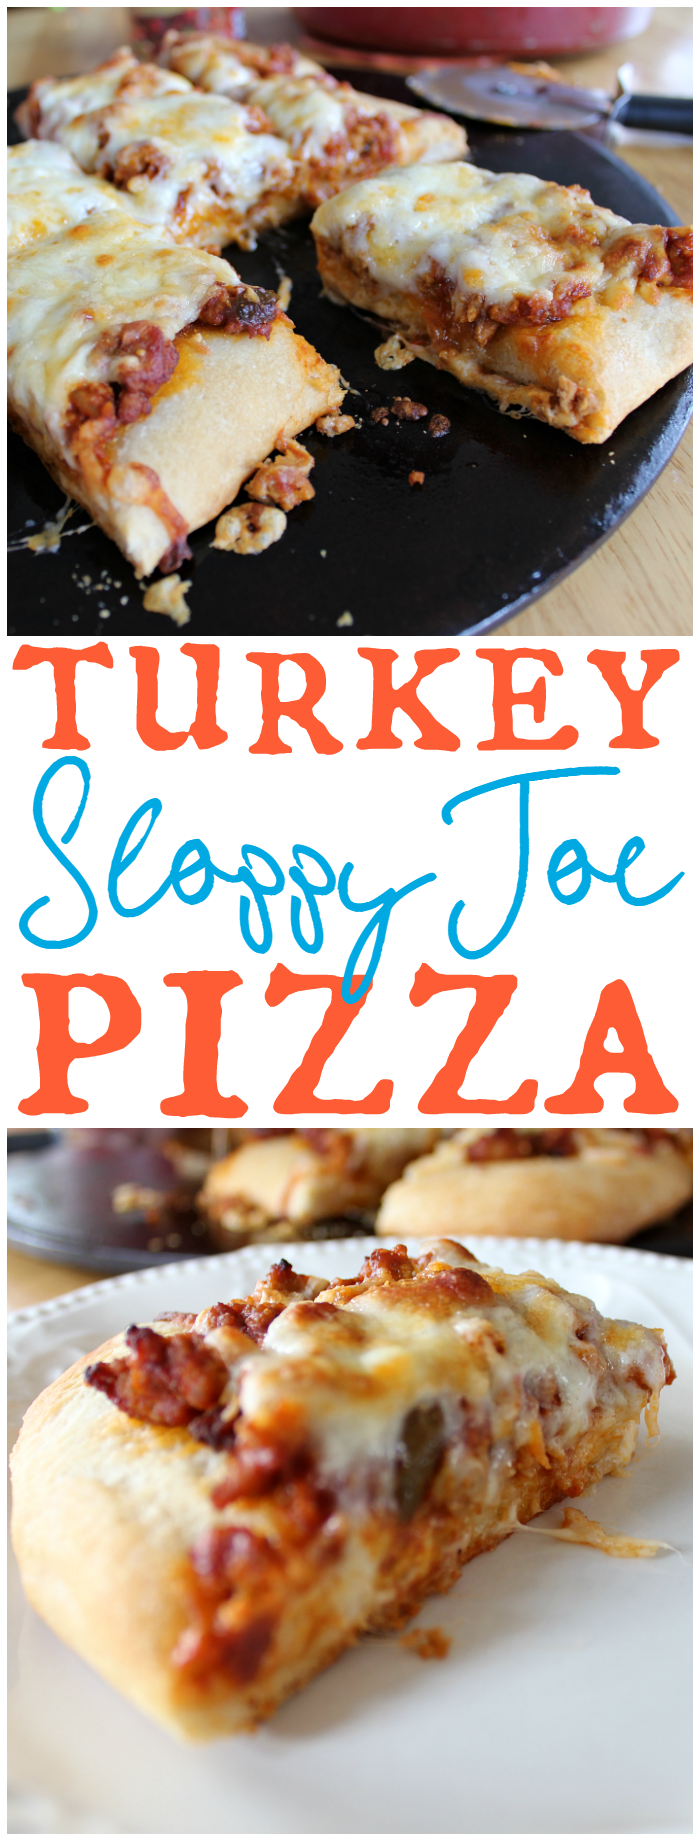 Turkey Sloppy Joe Pizza is a delicious, kid-approved, new spin on a classic!